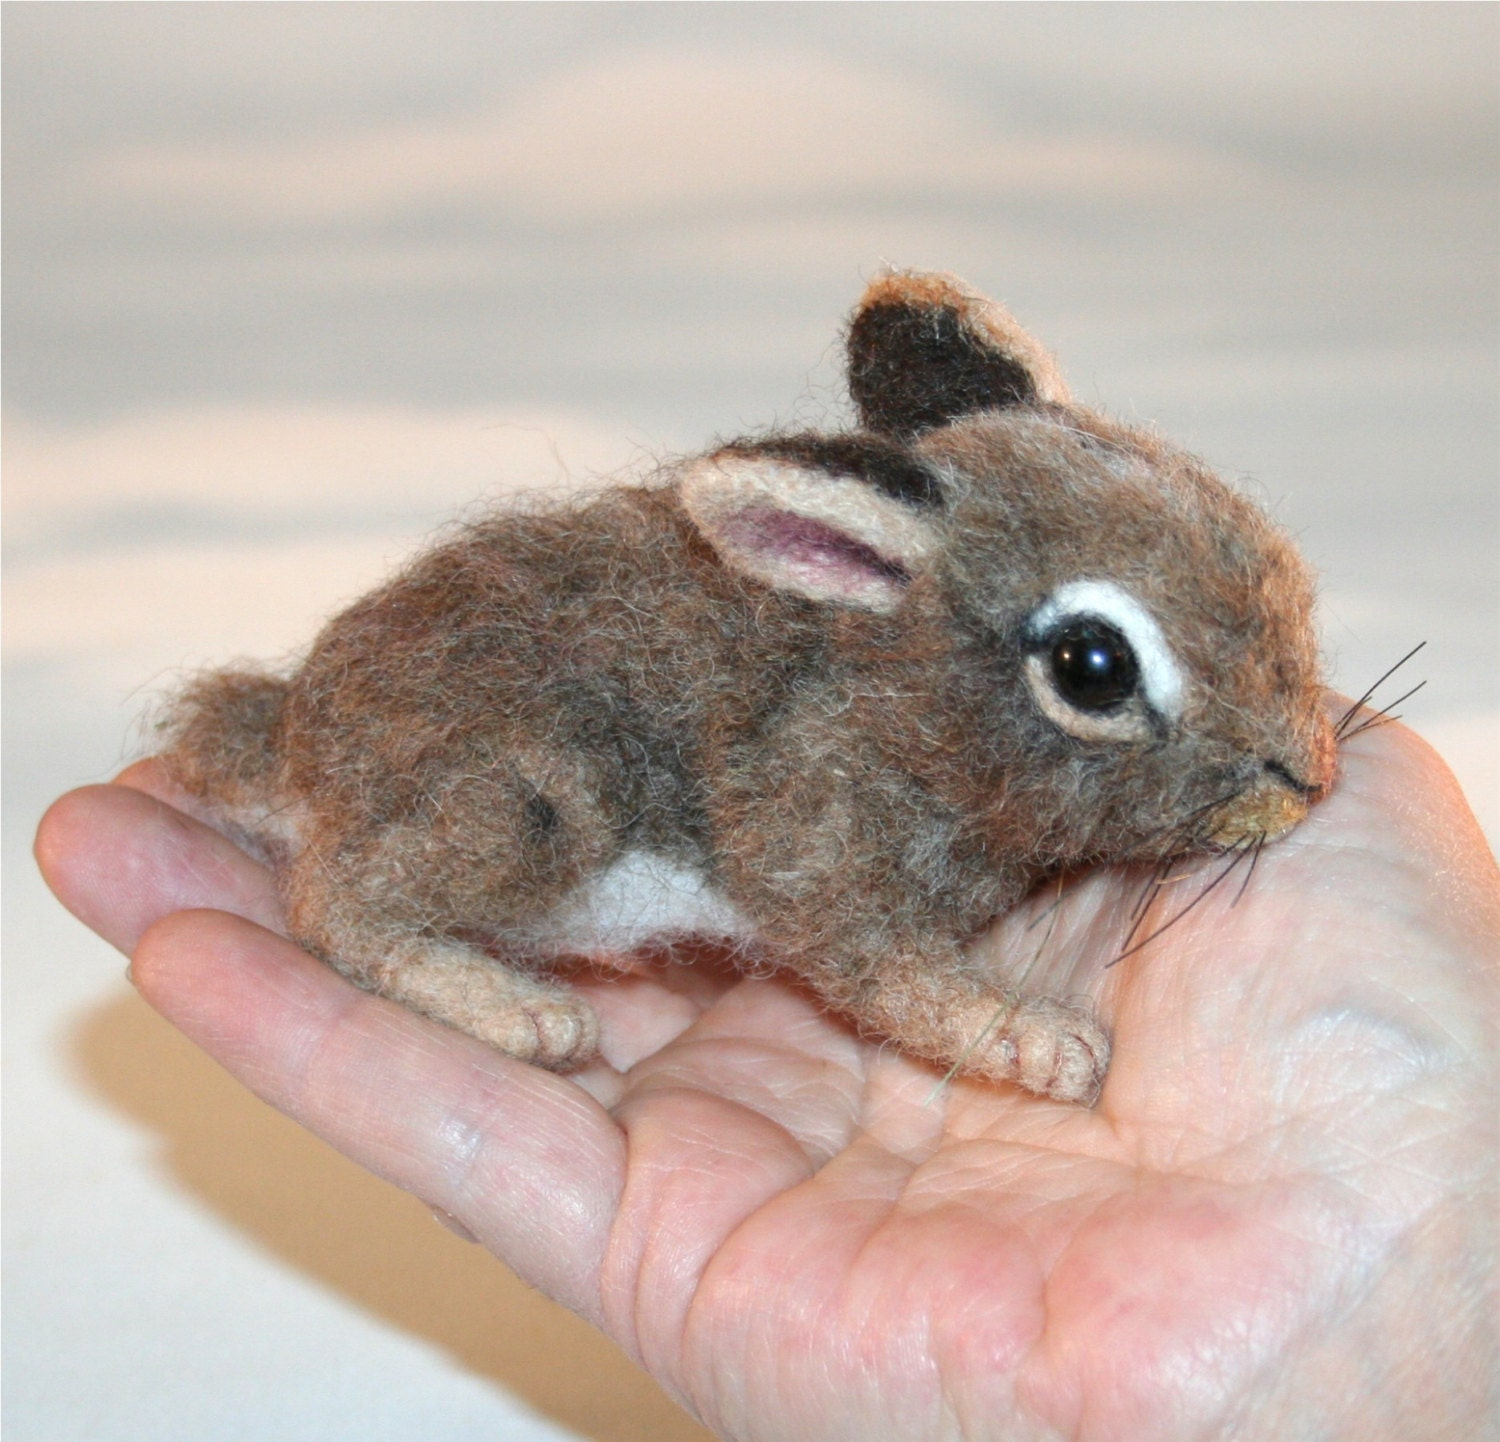 Baby cottontail rabbit - photo#16